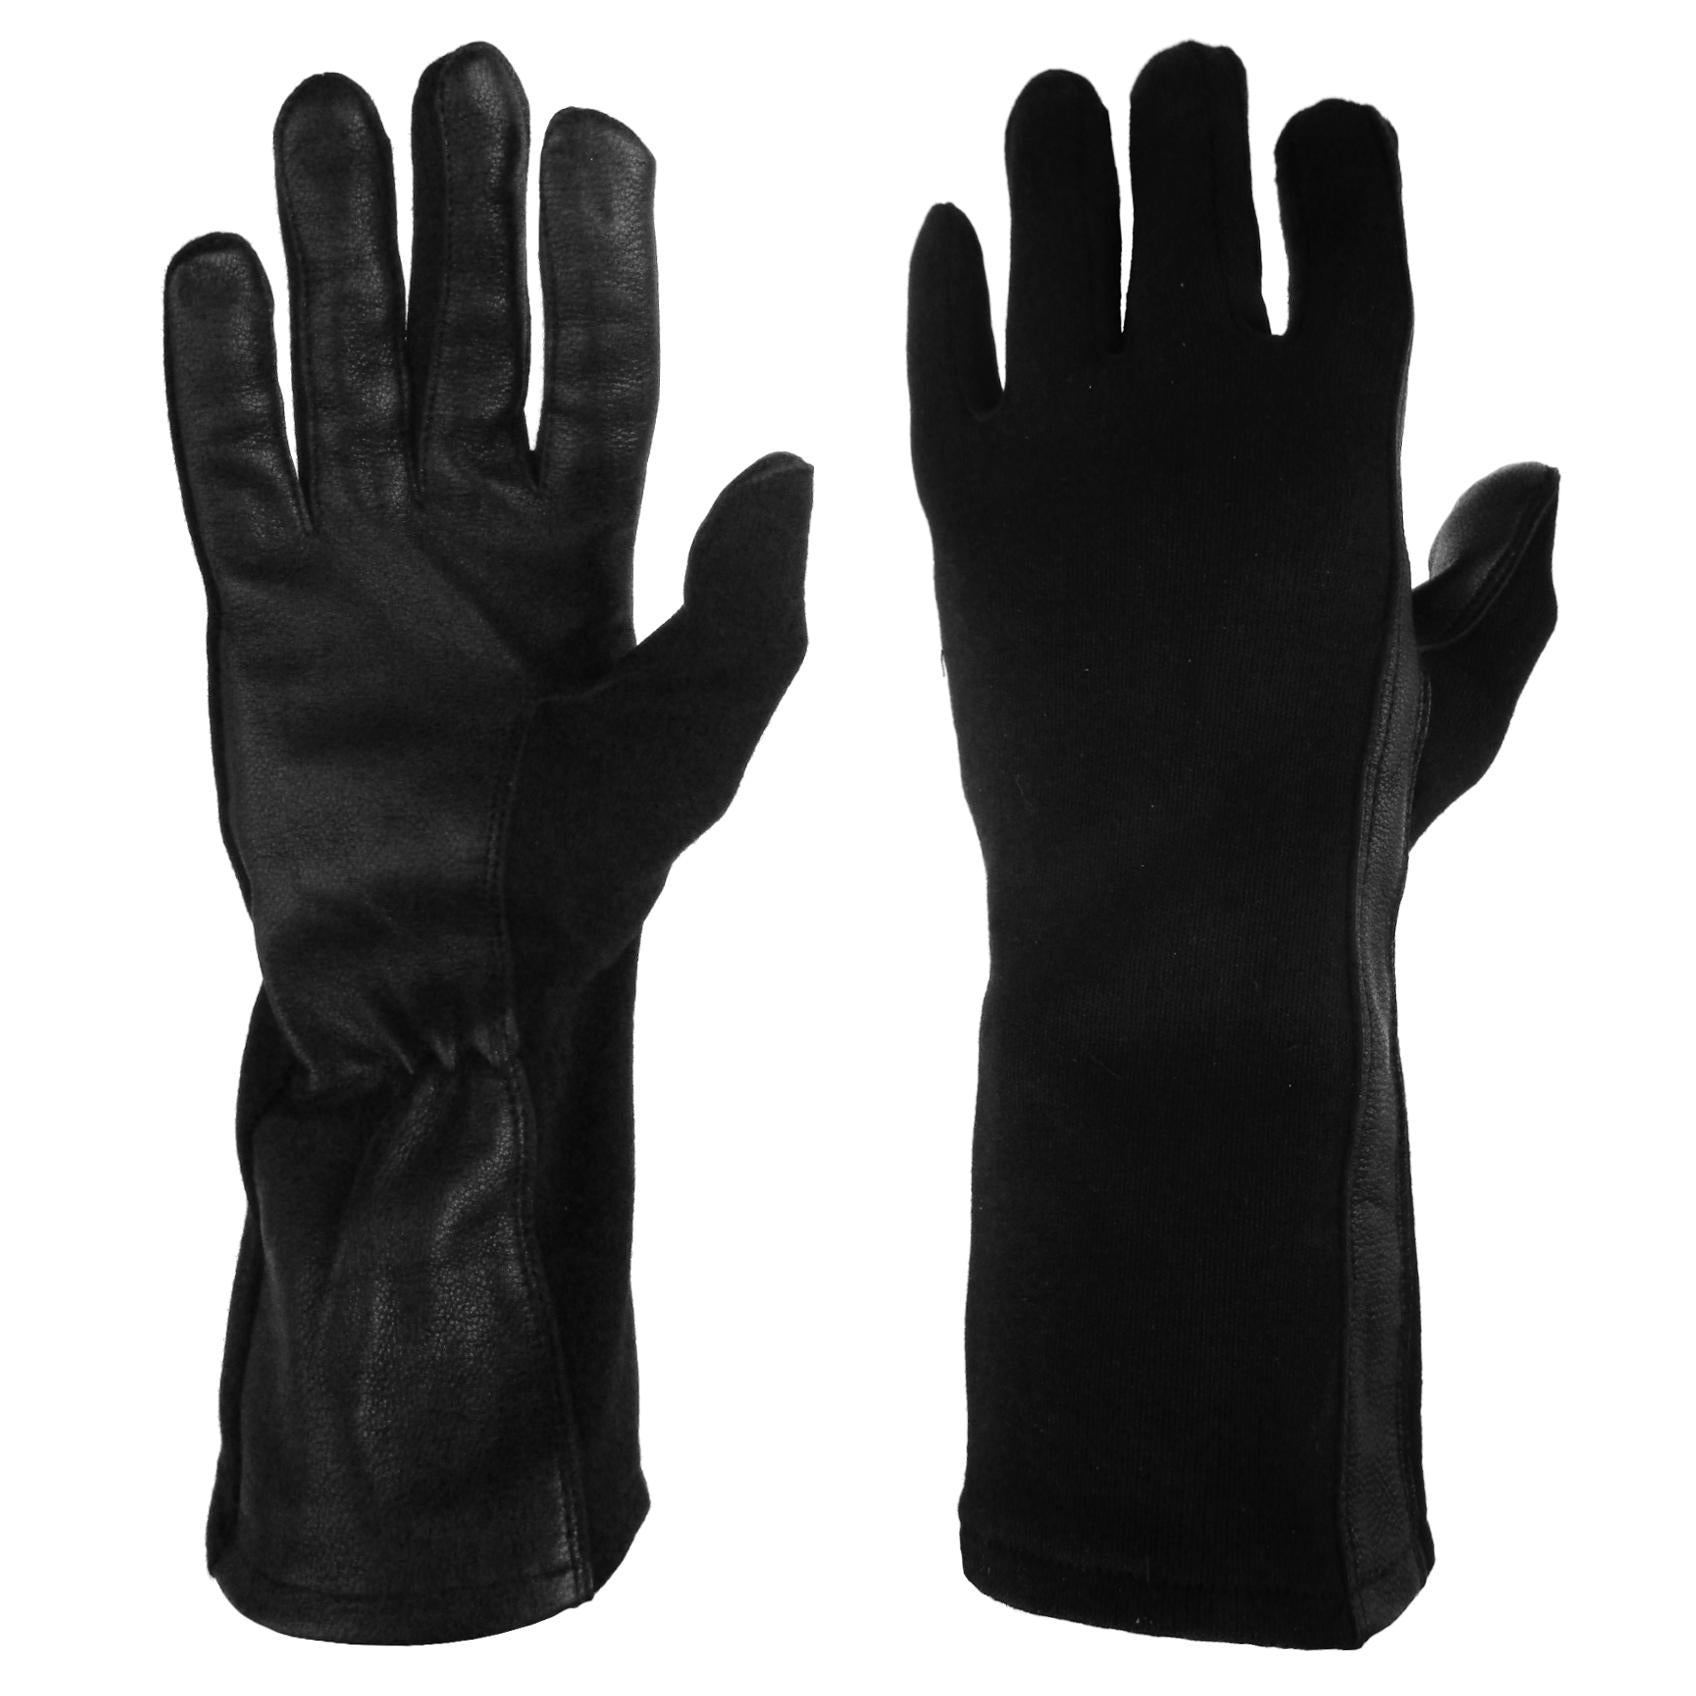 Nomex Flight Gloves Black Fire Resistant Tactical Leather XX Large Size 12 NEW